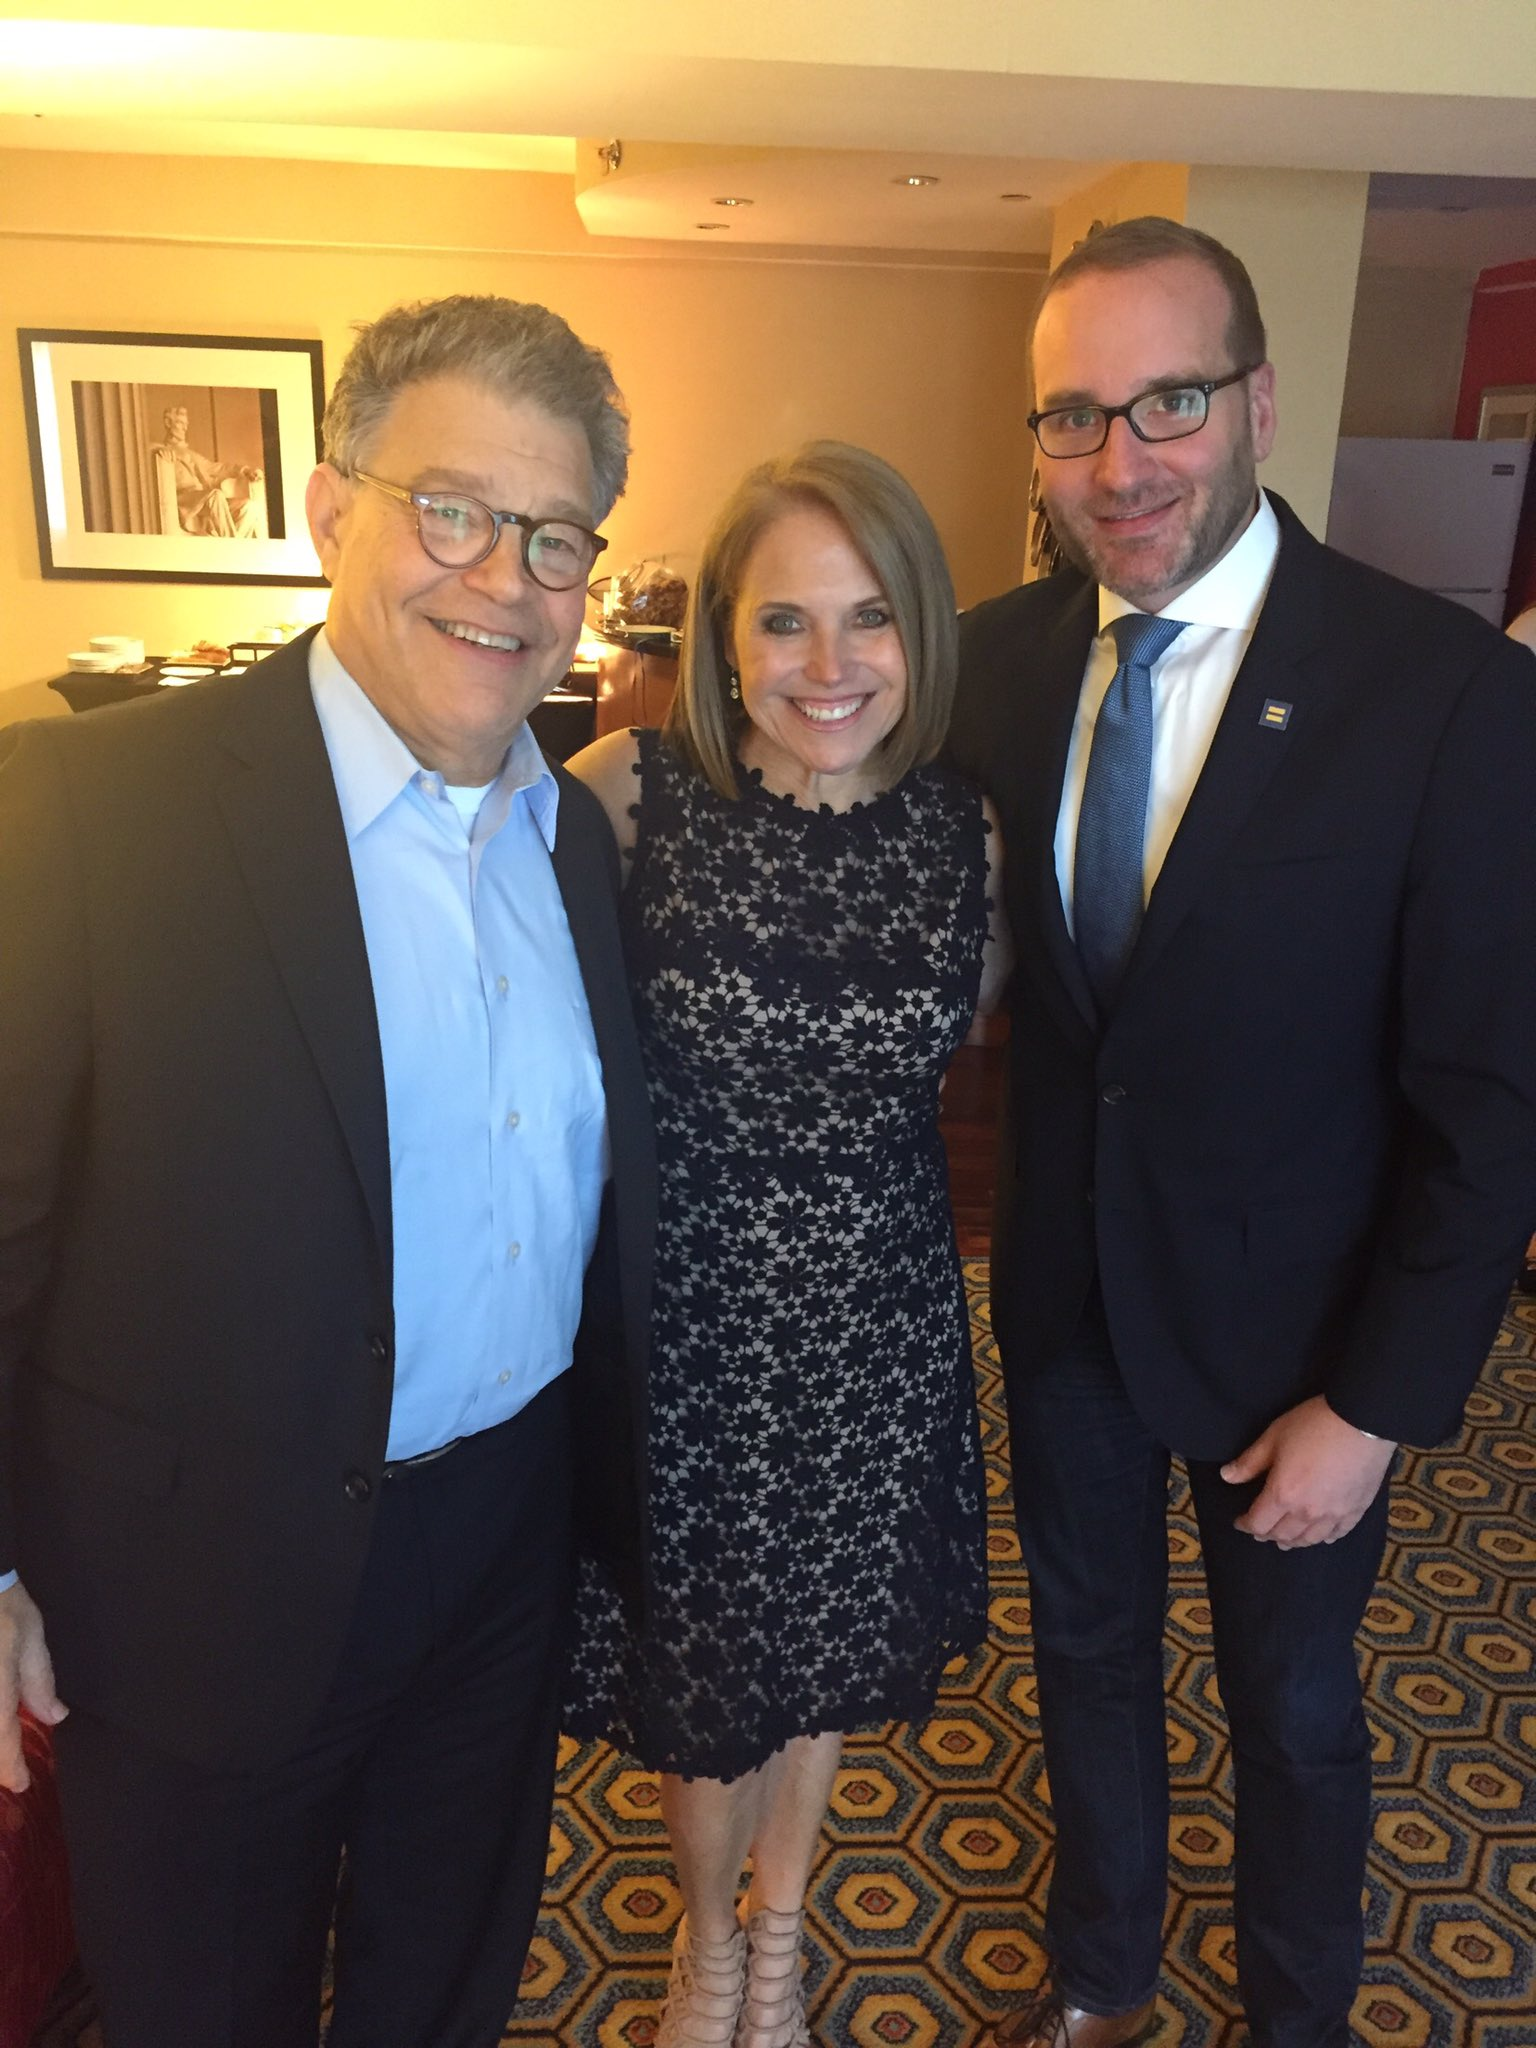 Tonight at the @HRC's #TimeToTHRIVE Conference with @alfranken and @ChadHGriffin https://t.co/gbFWZqZ8kH